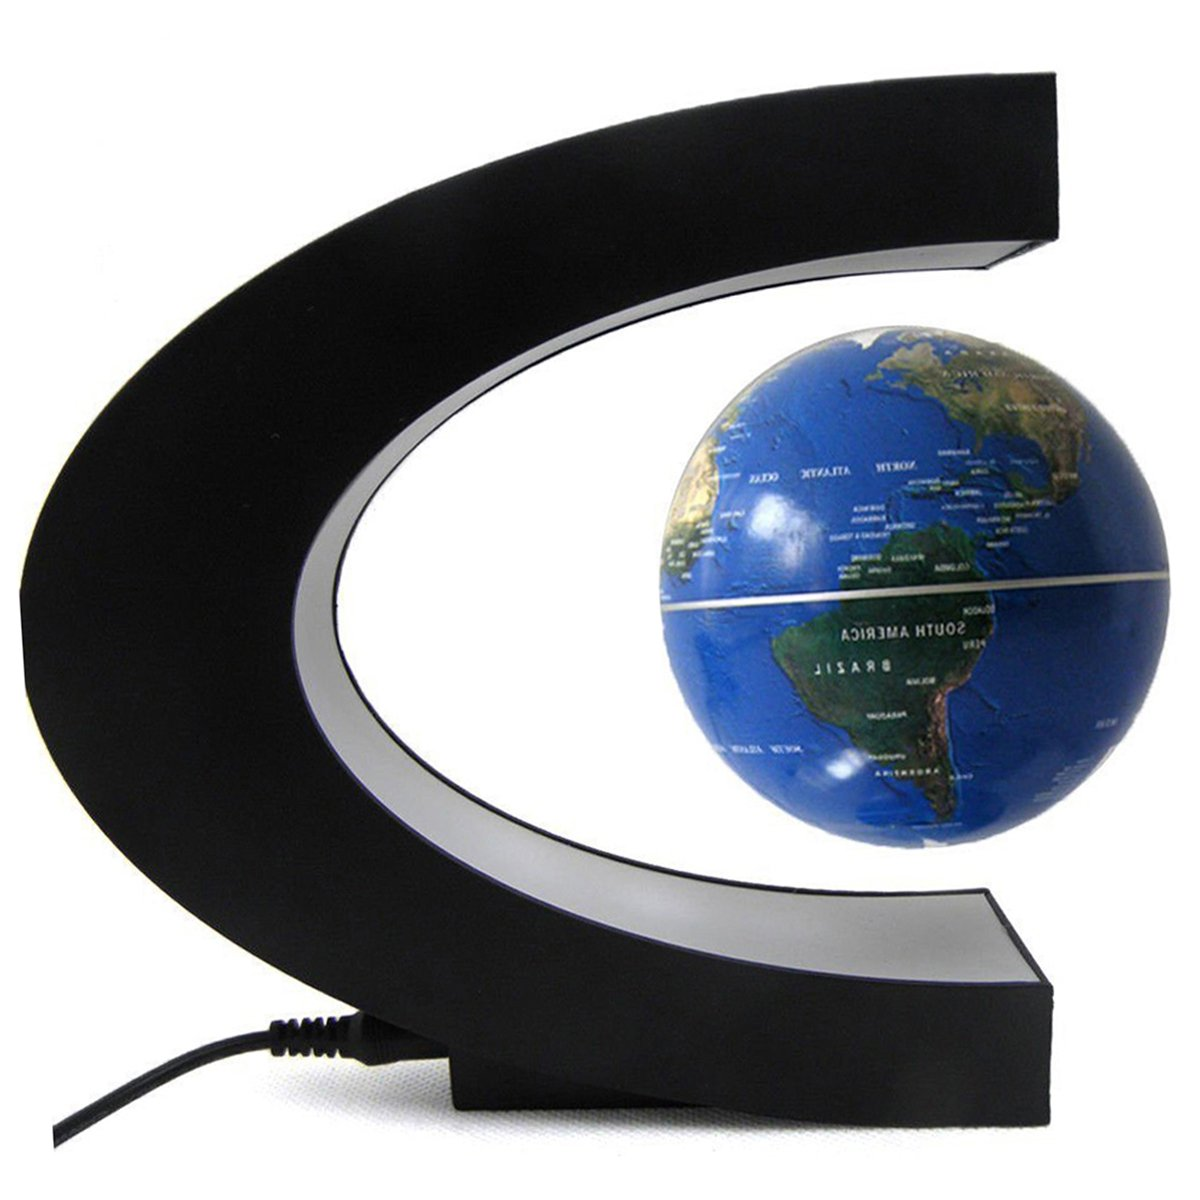 Koiiko c shape magnetic levitation floating world map amazon koiiko c shape magnetic levitation floating world map amazon electronics gumiabroncs Image collections